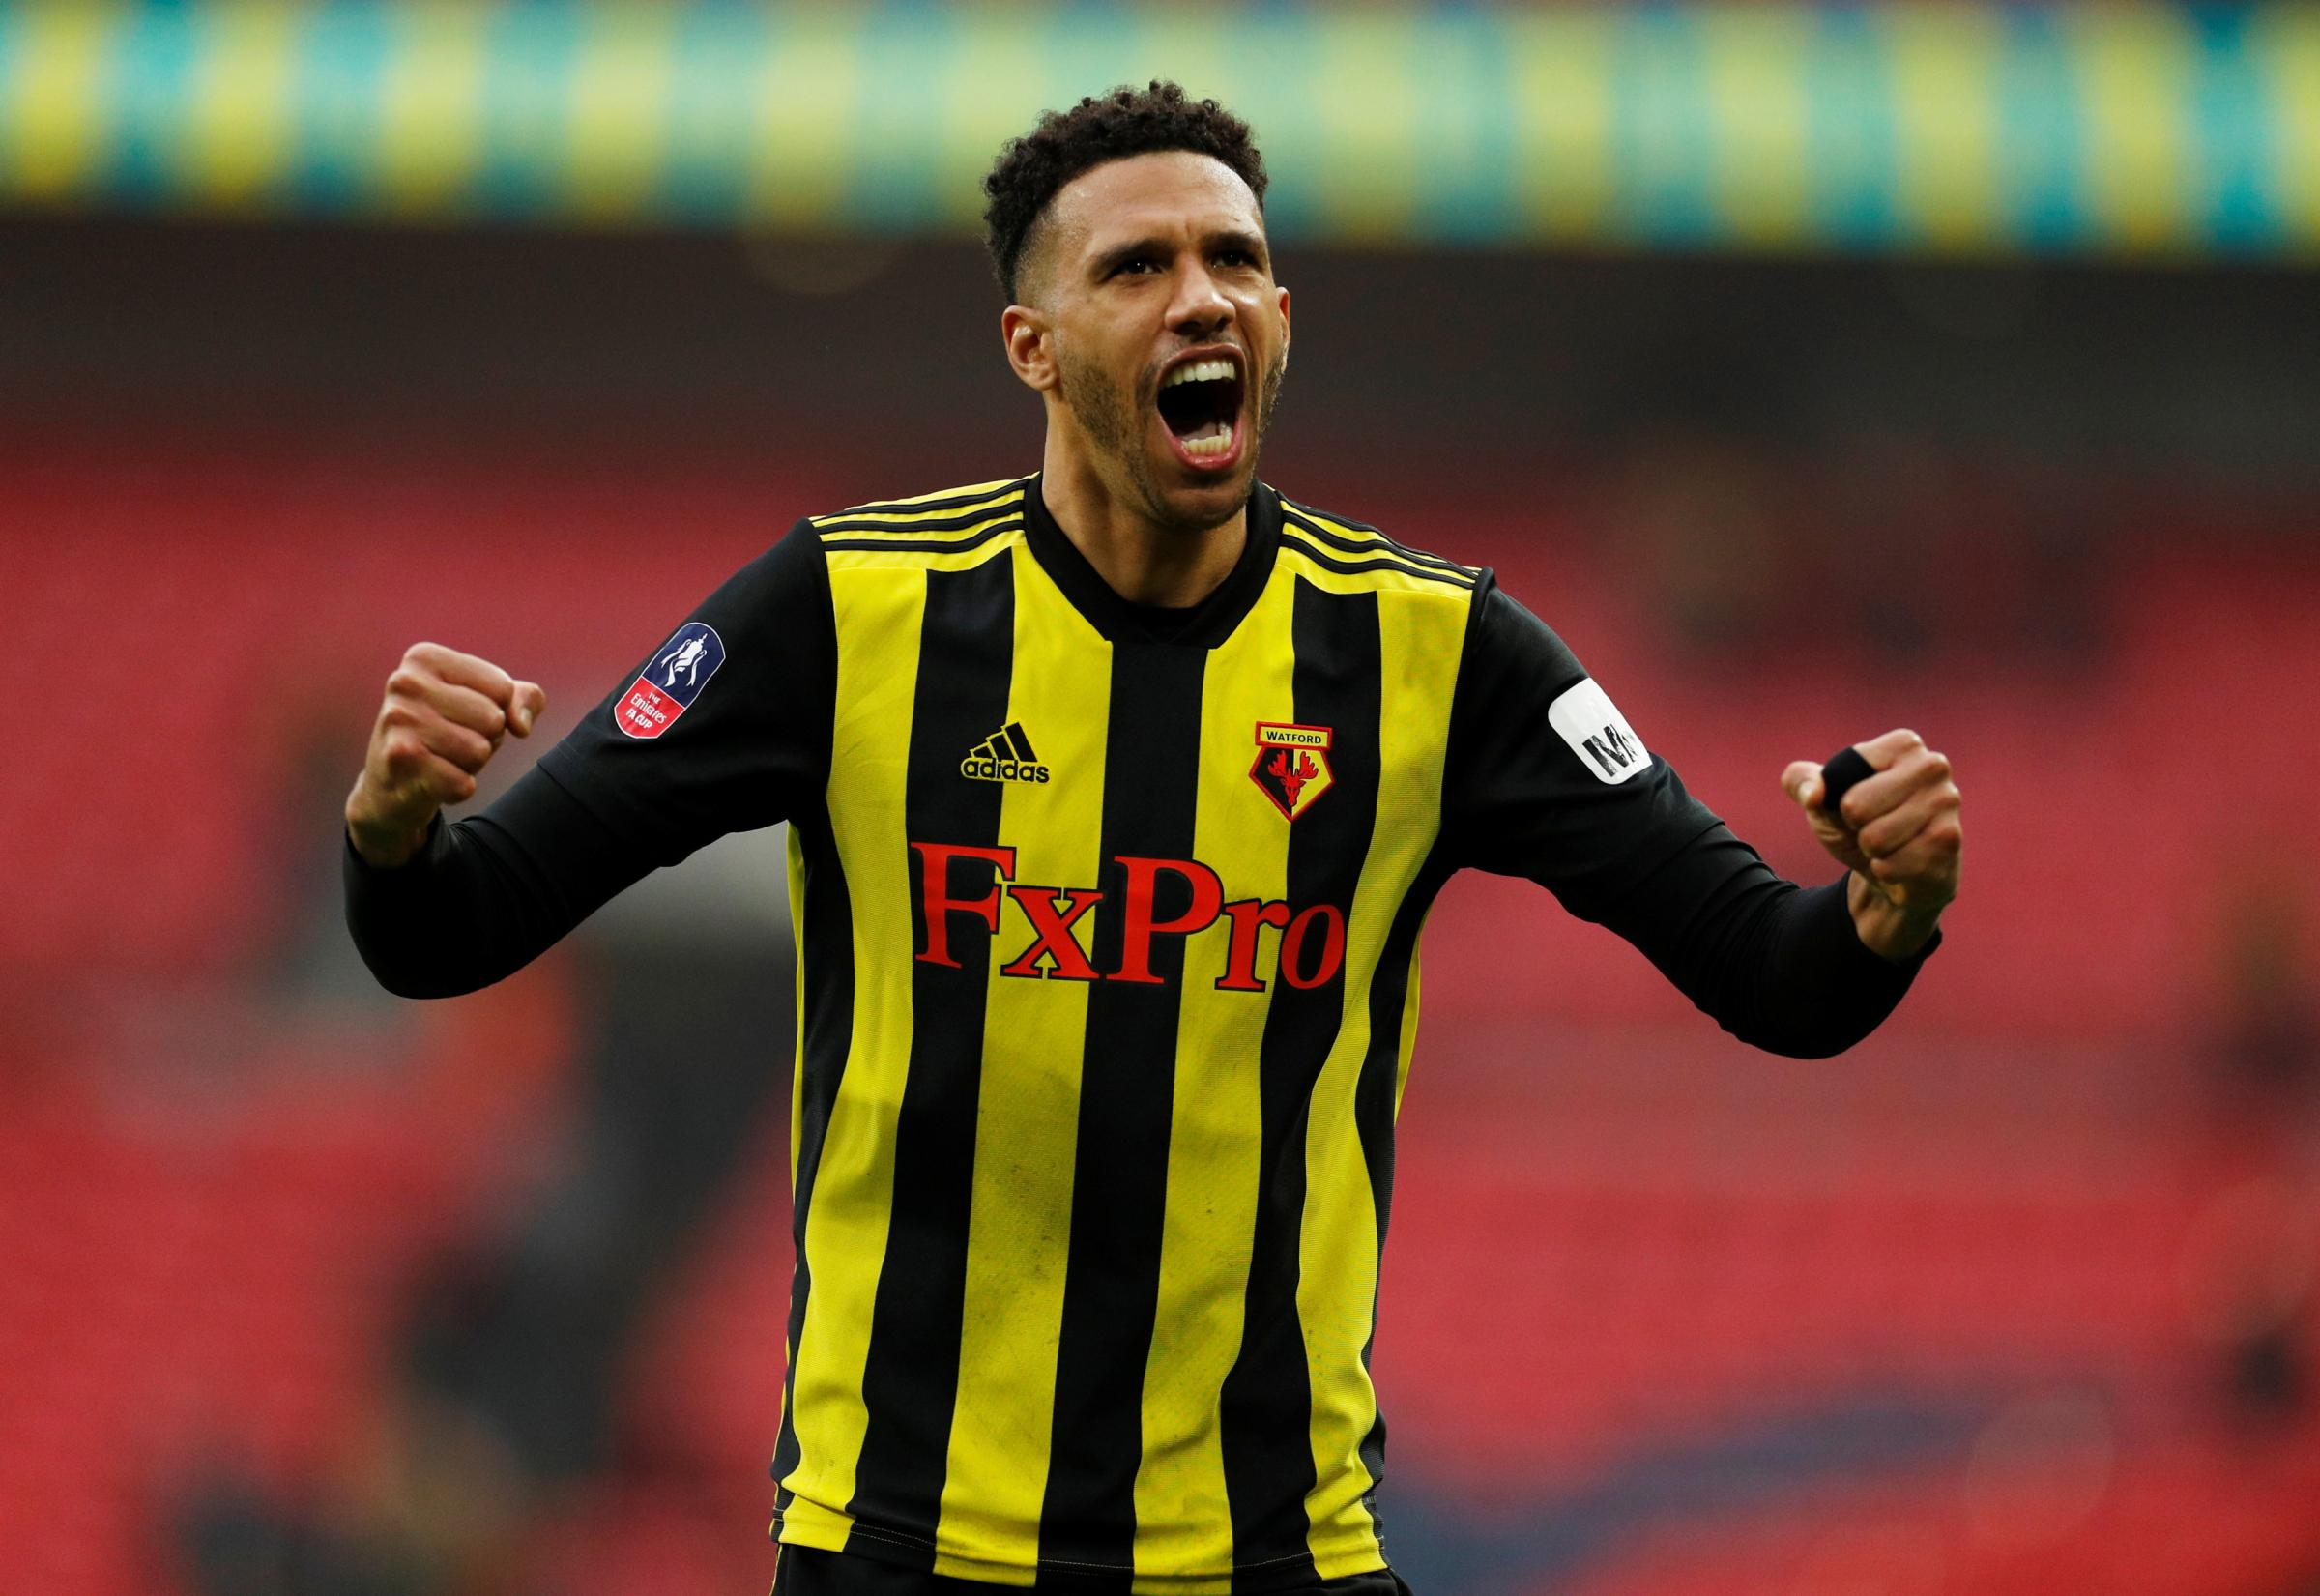 Etienne Capoue in the FA Cup semi-final. Picture: Action Images